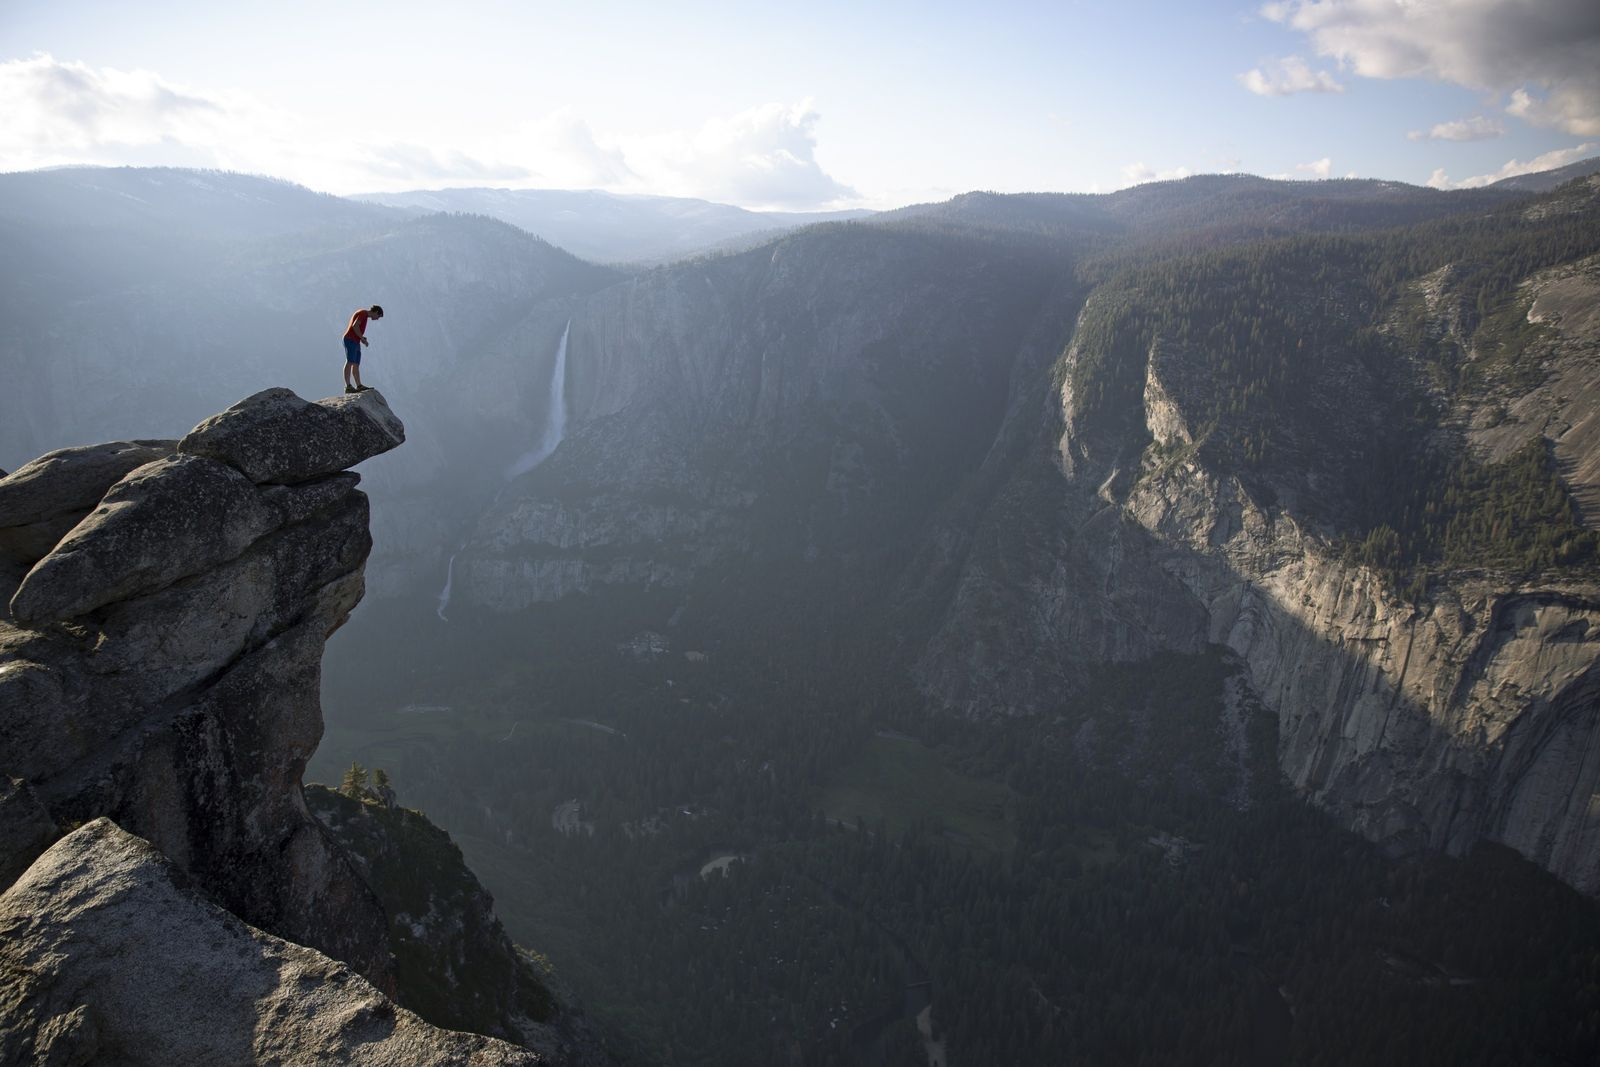 Don't look down... at least until you're at the top. Alex Honnold peers over the edge ...